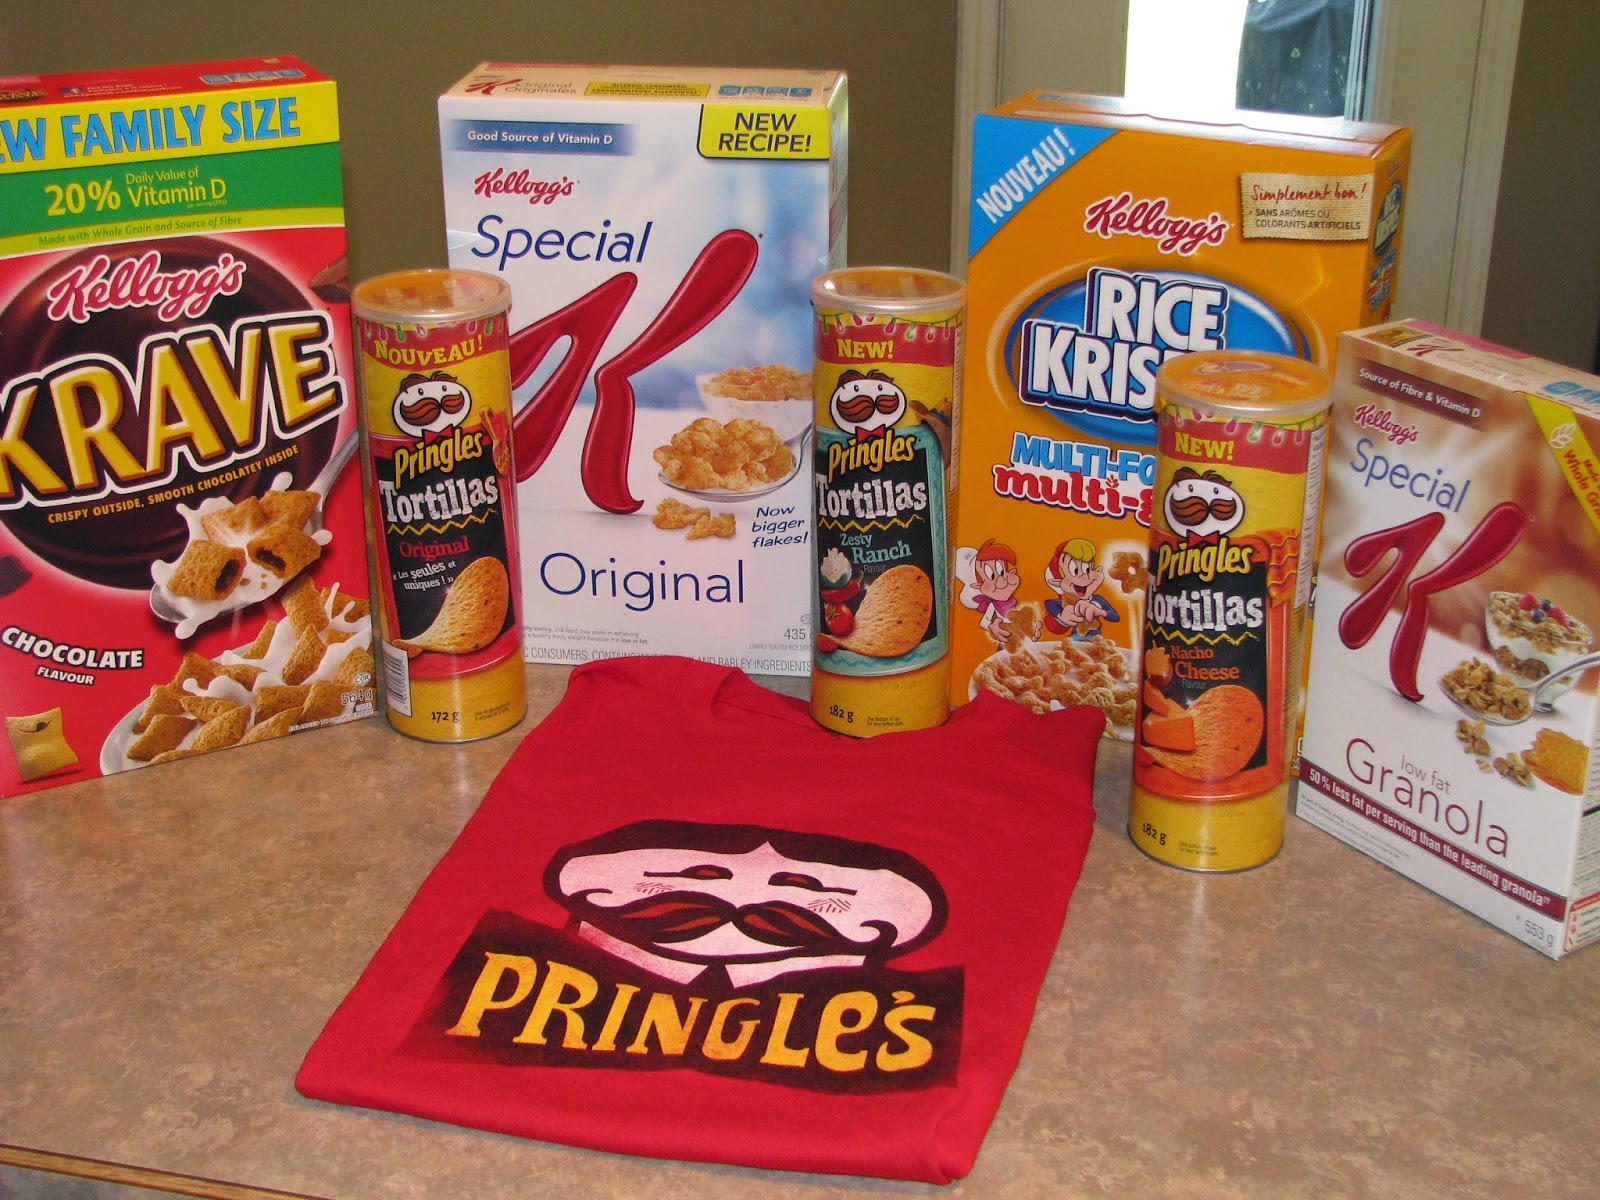 Kellogg's Innovation Prize Pack | Addicted to Recipes contest